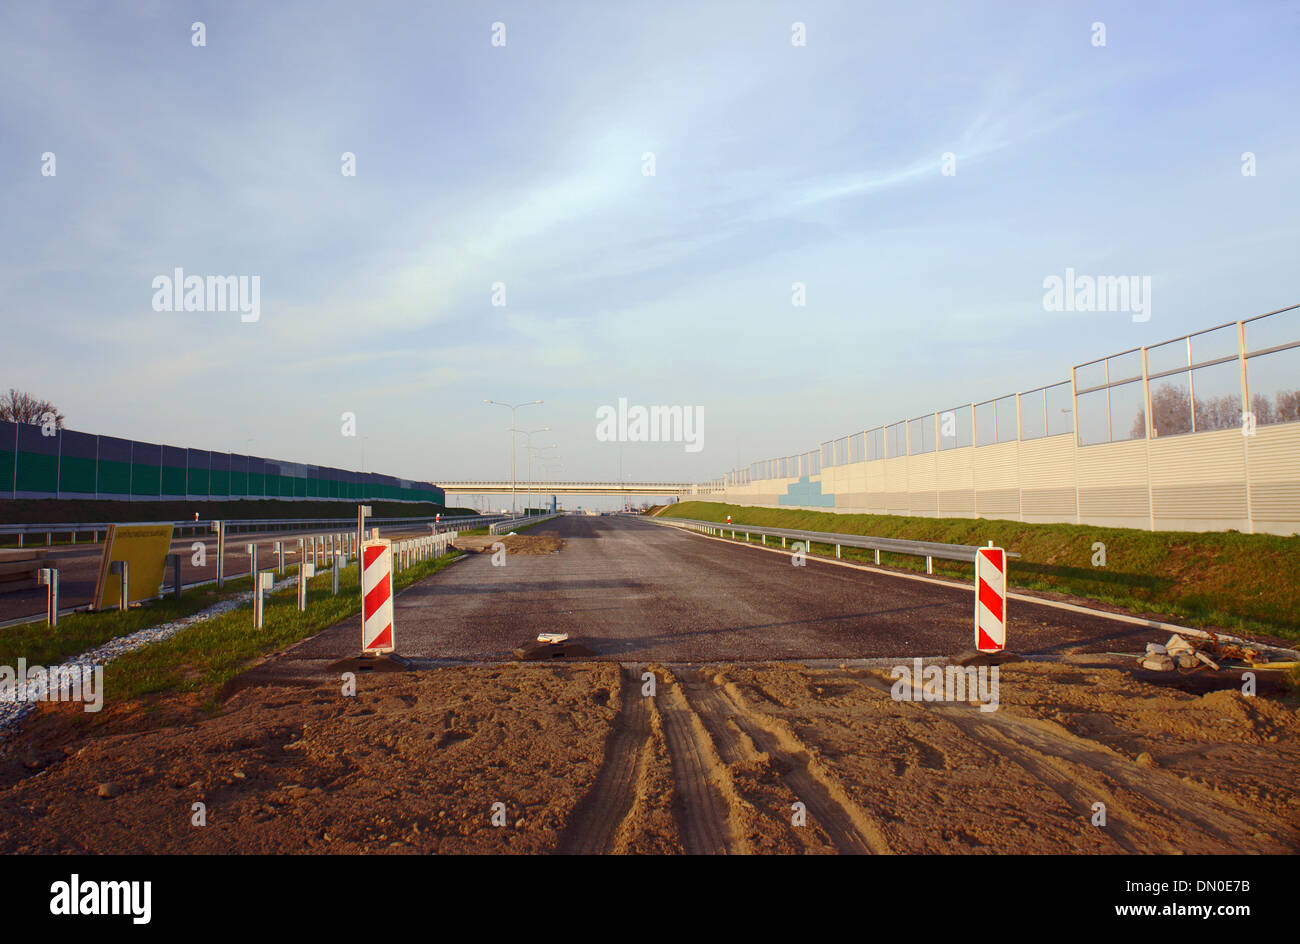 orbital road under construction in Poznan, Poland, may 2013 - Stock Image